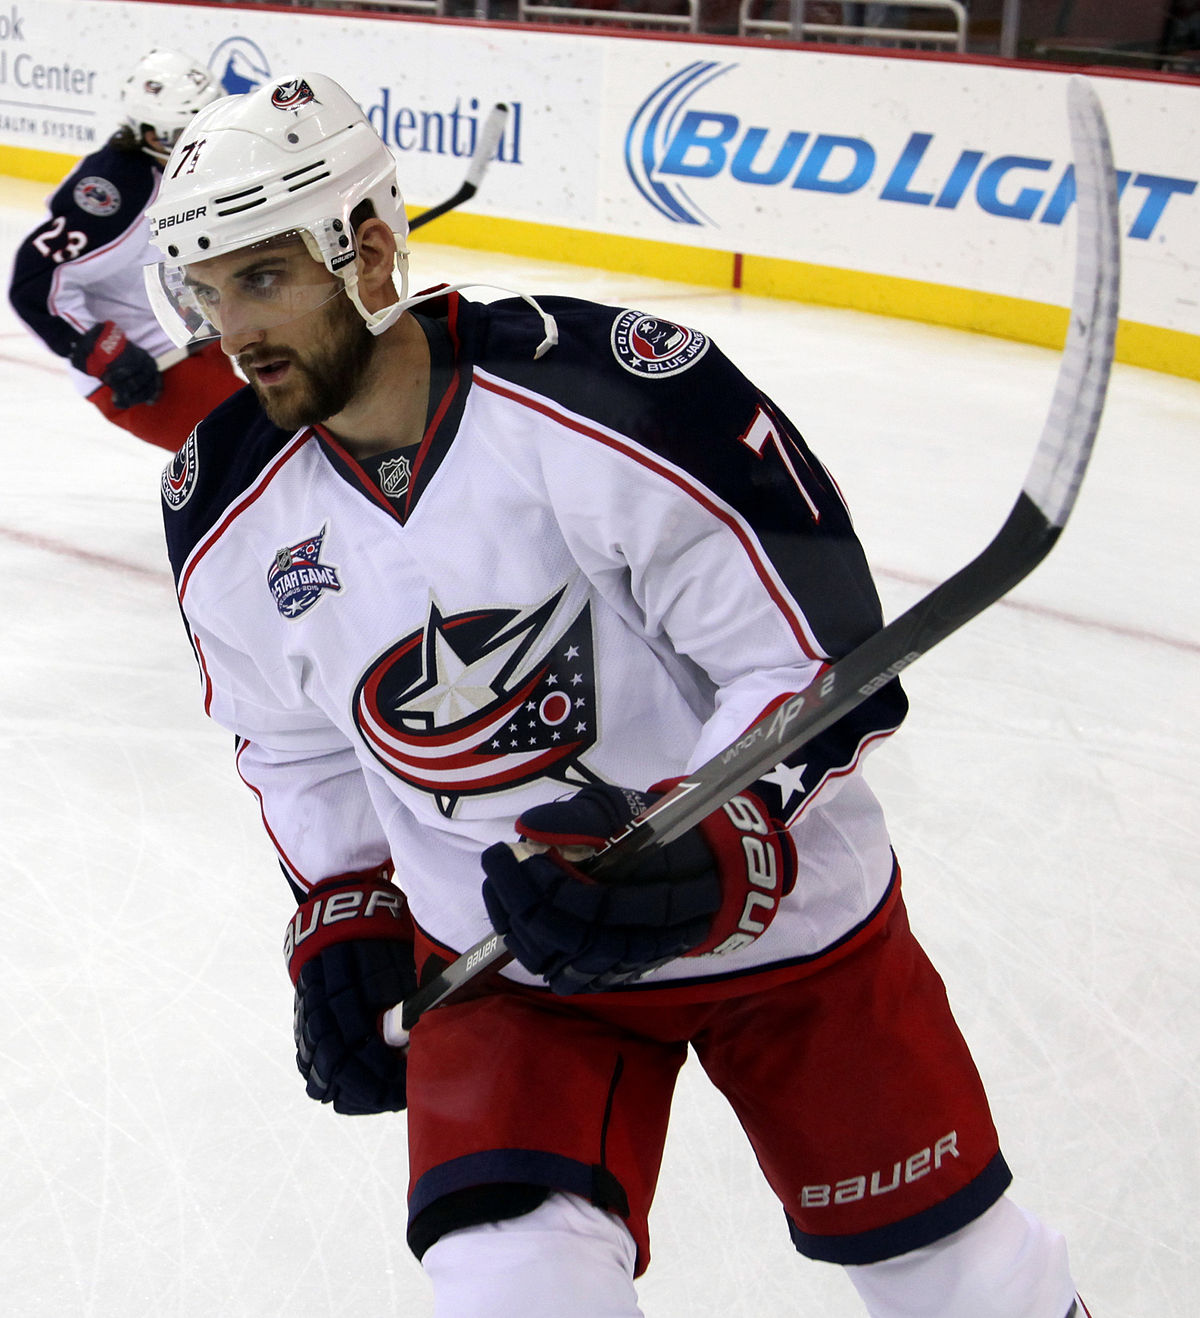 lowest price 2c52c 6f3d0 Columbus Blue Jackets – Wikipedia